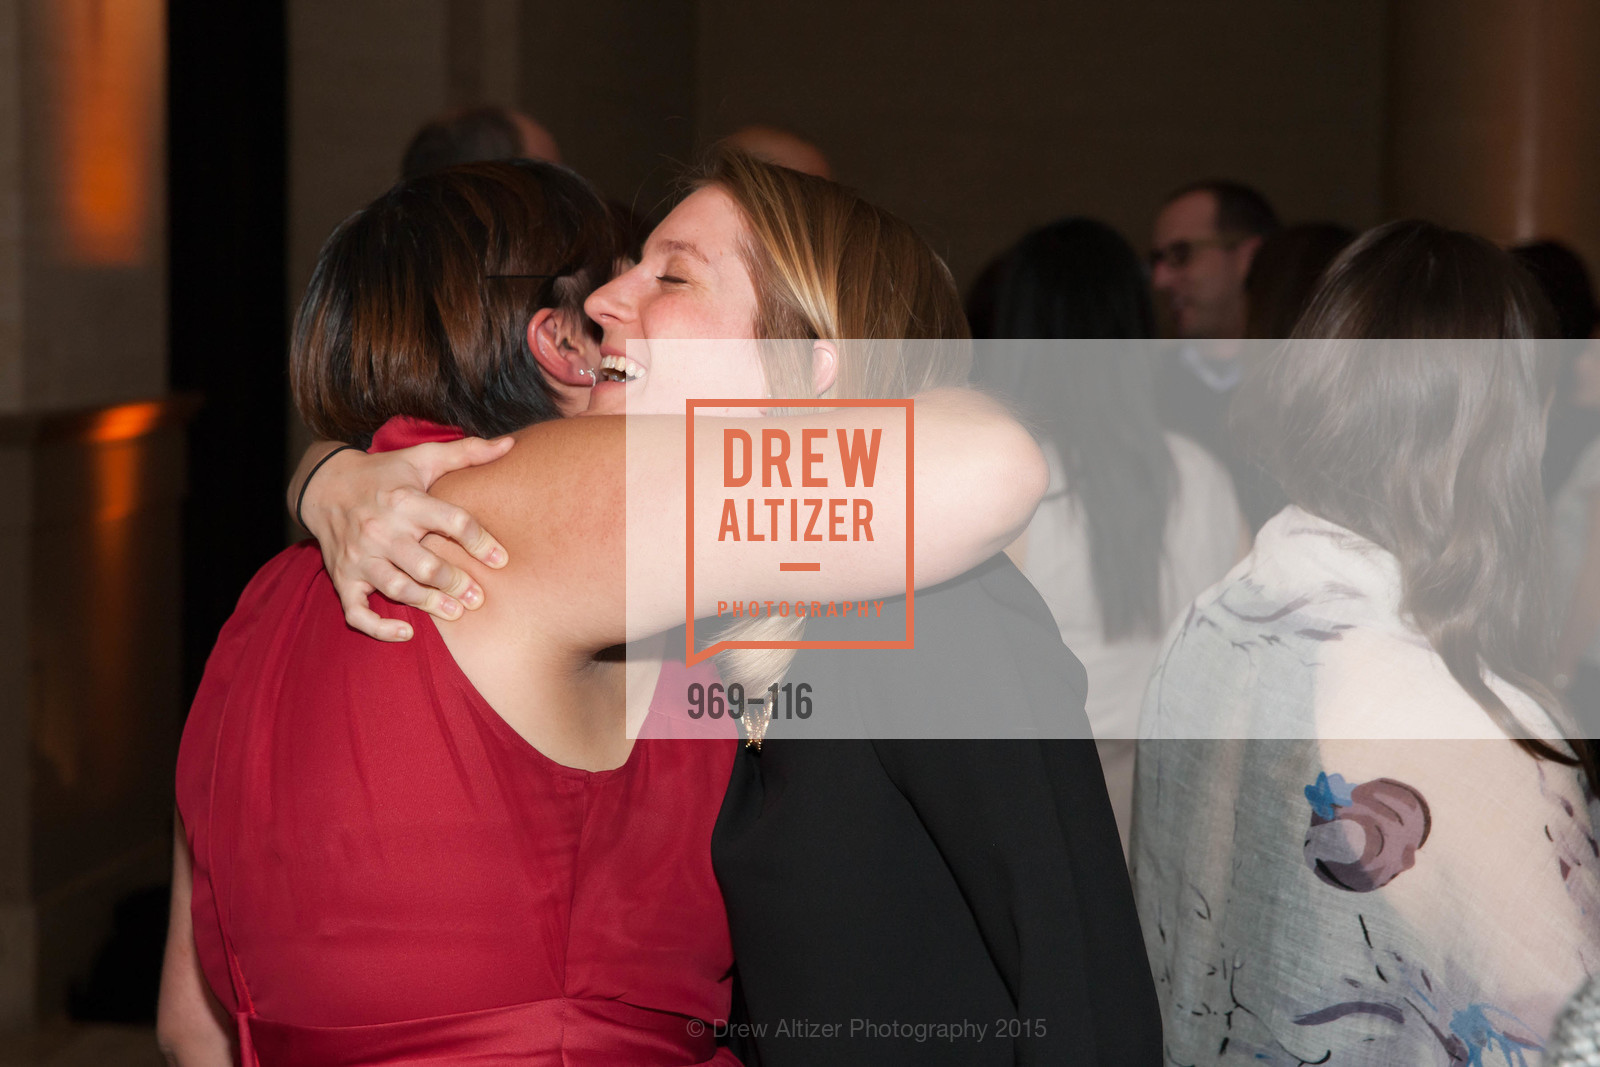 Extras, Aspire Public Schools 2nd Annual Gala, May 20th, 2015, Photo,Drew Altizer, Drew Altizer Photography, full-service agency, private events, San Francisco photographer, photographer california